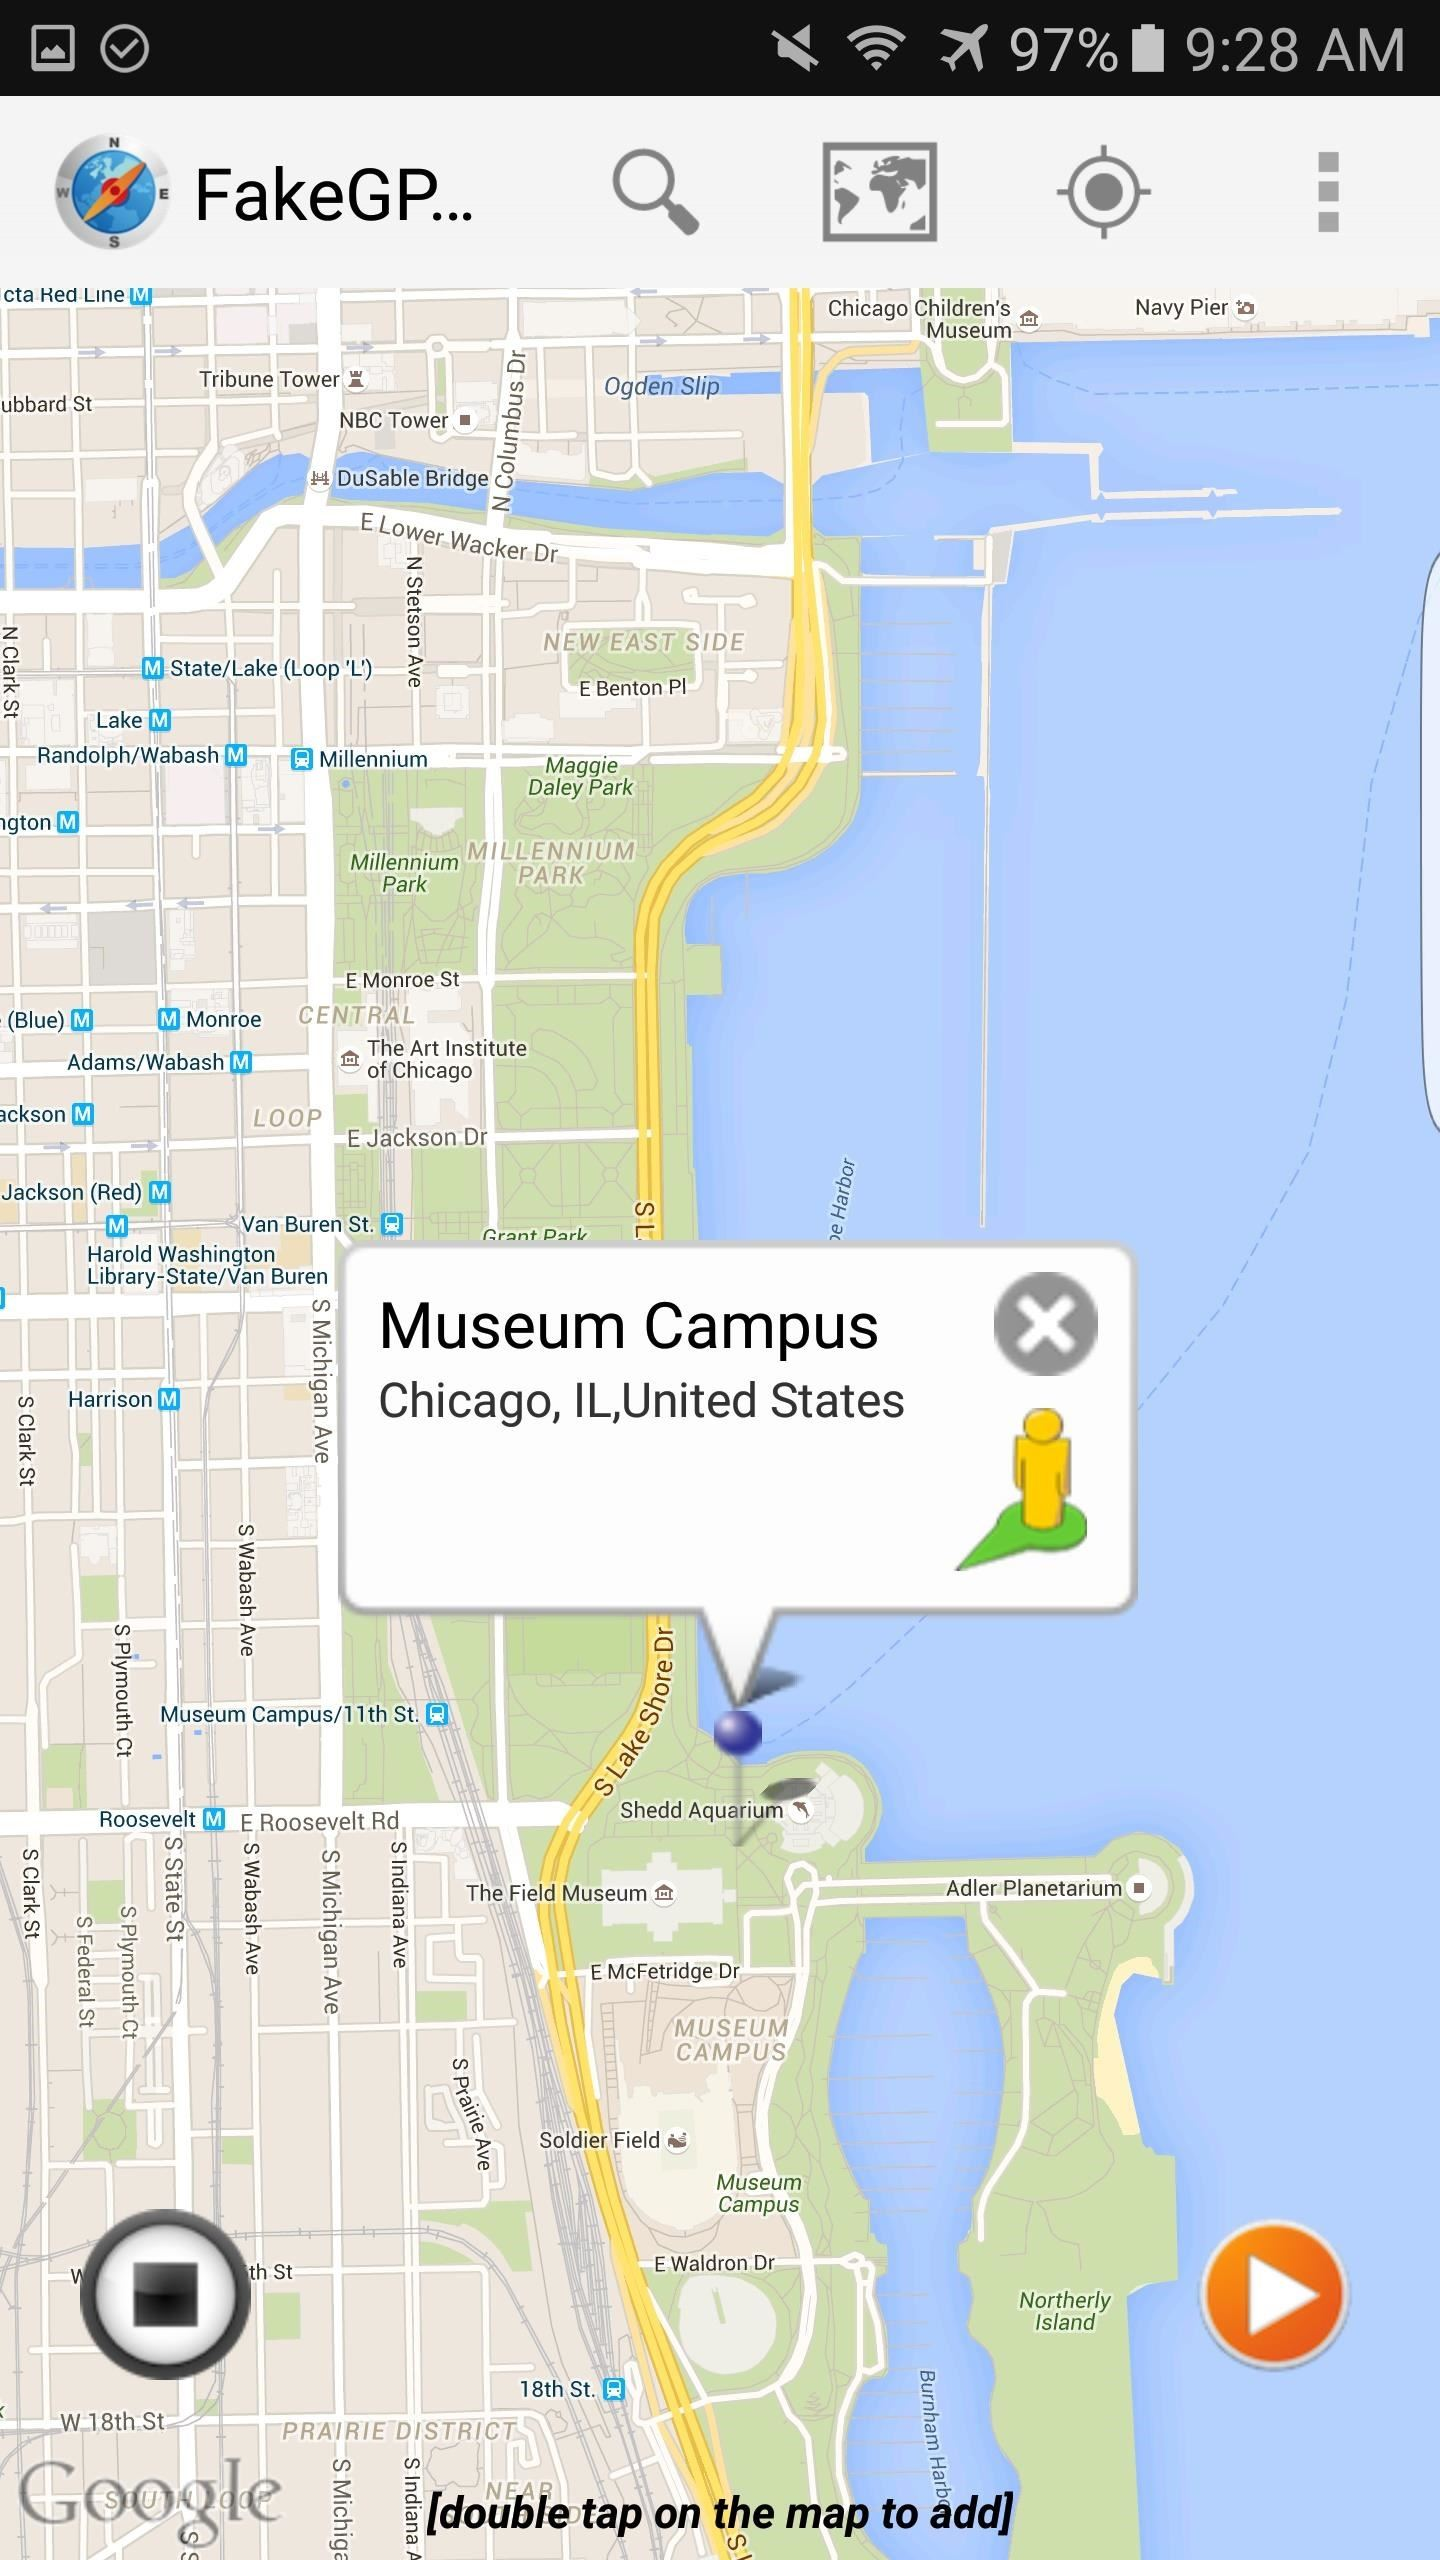 How to Fake Your GPS Location & Movement to Cheat at Pokémon GO on Android